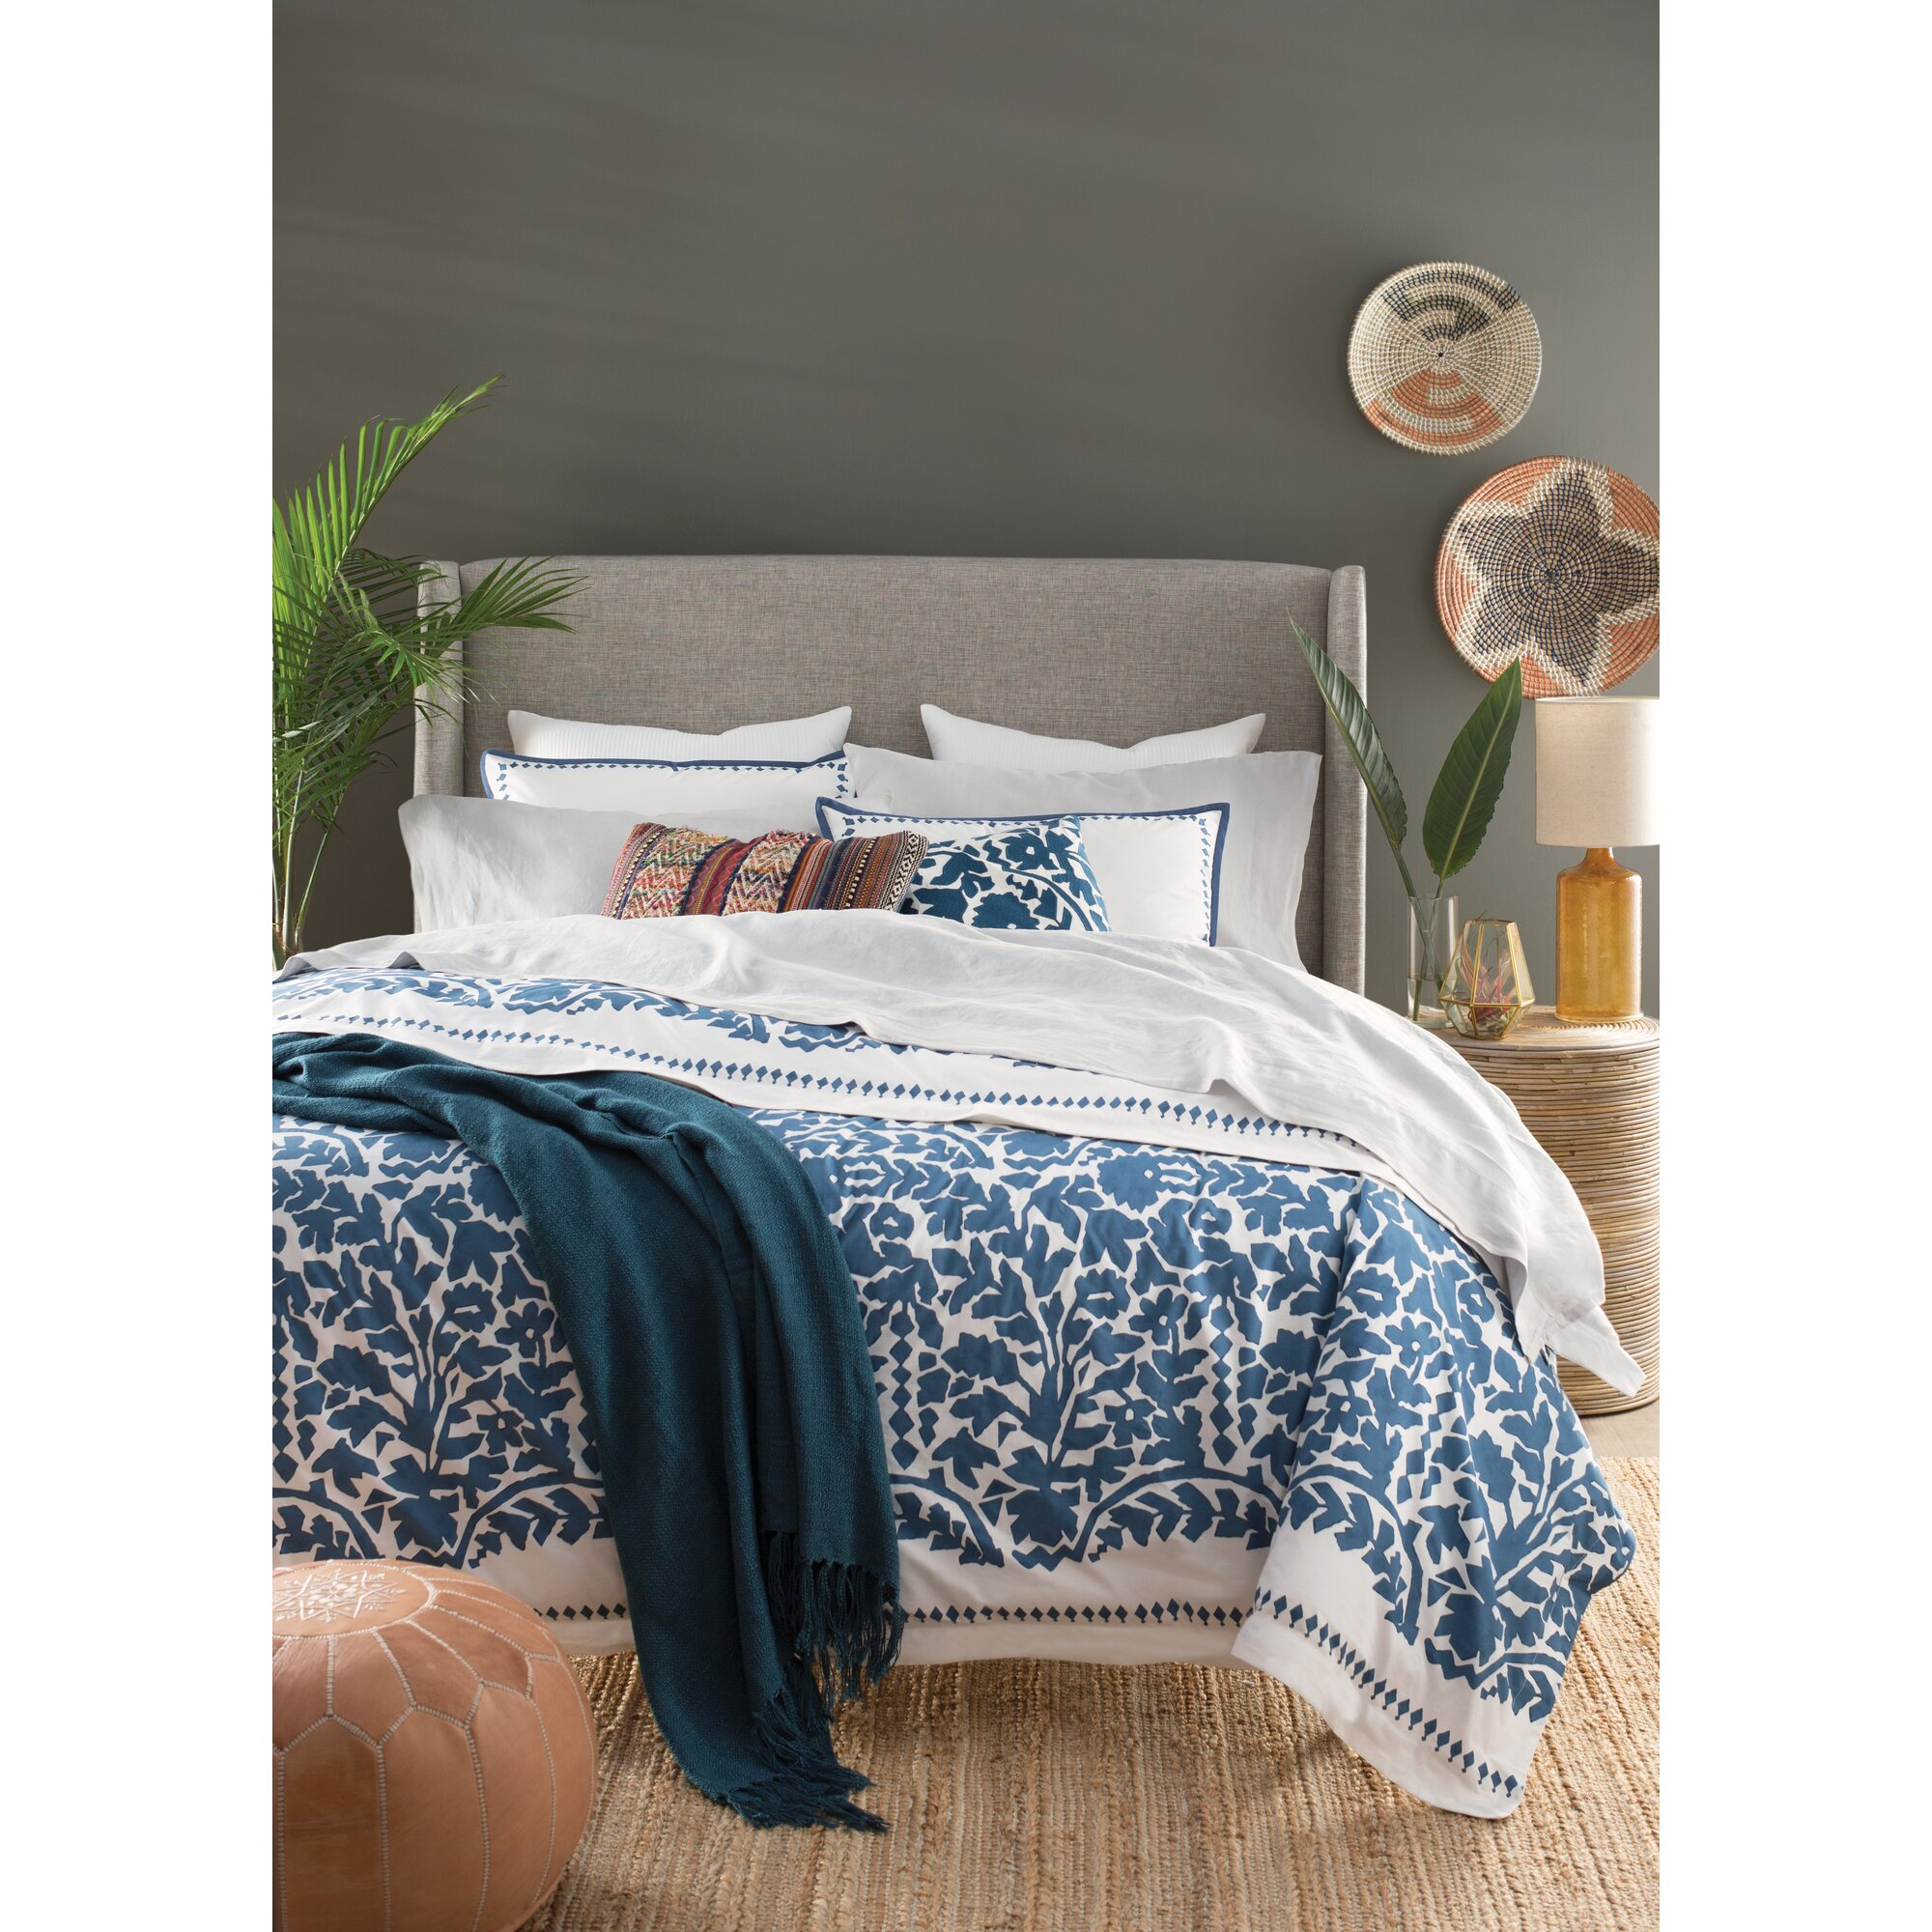 dwell studio bedding dwellstudio bedding for target  ium  - oaxaca bedding collection